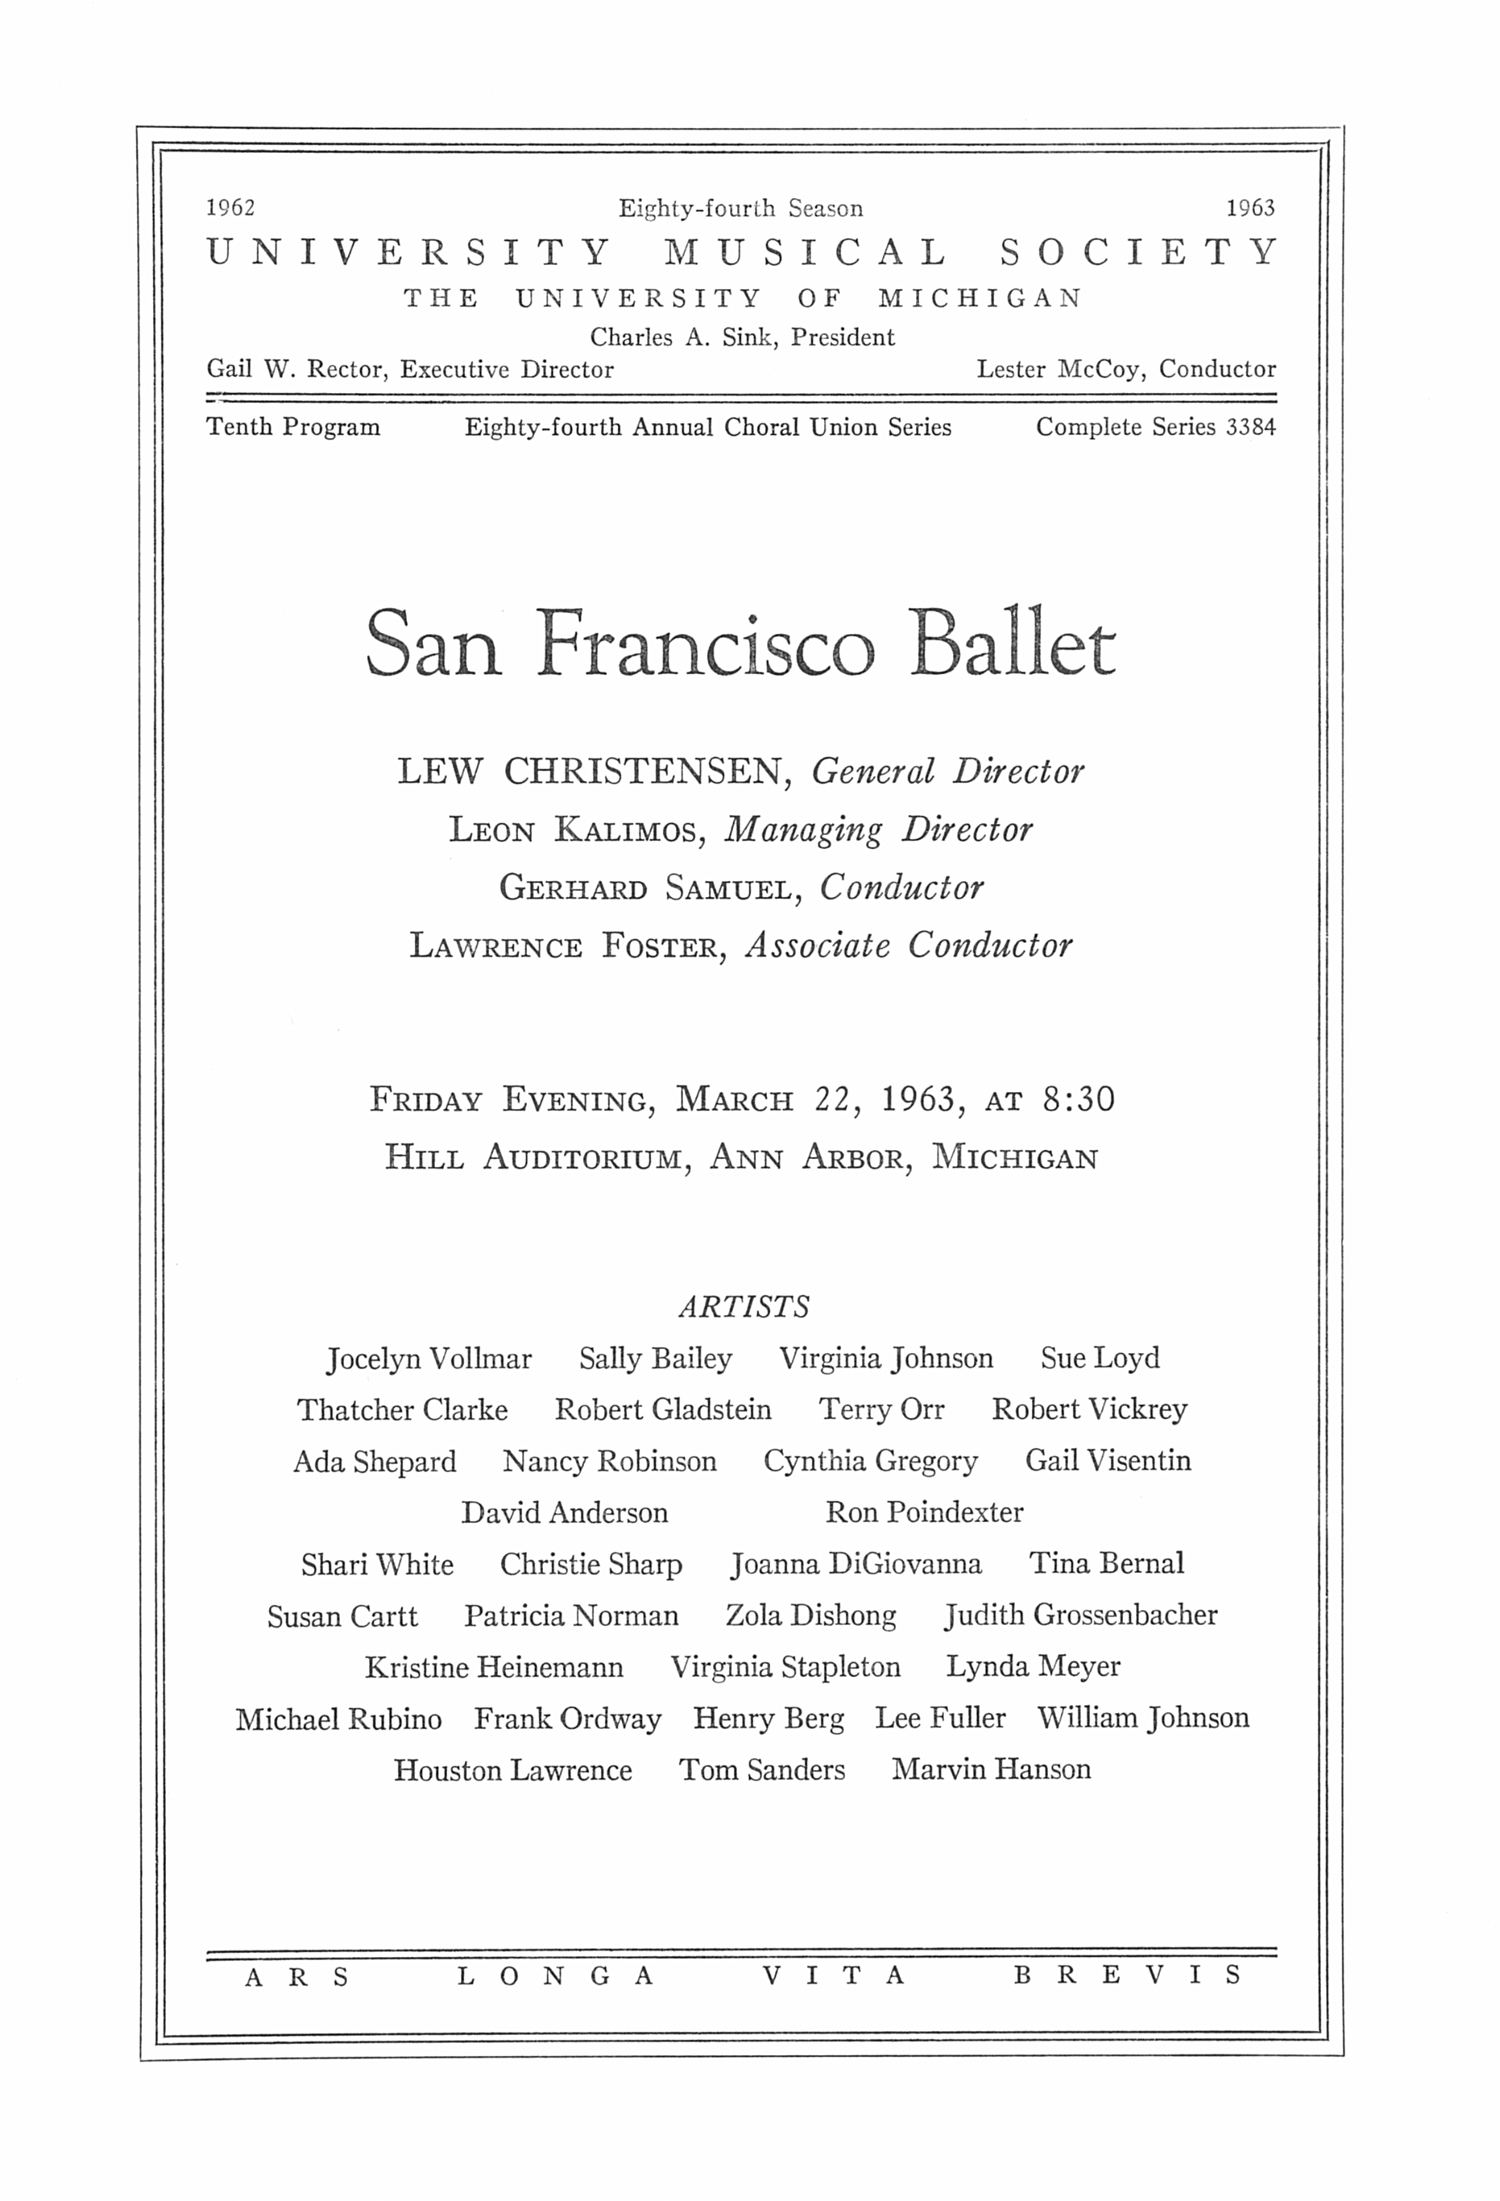 UMS Concert Program, March 22, 1963: San Francisco Ballet -- Lew Christensen image